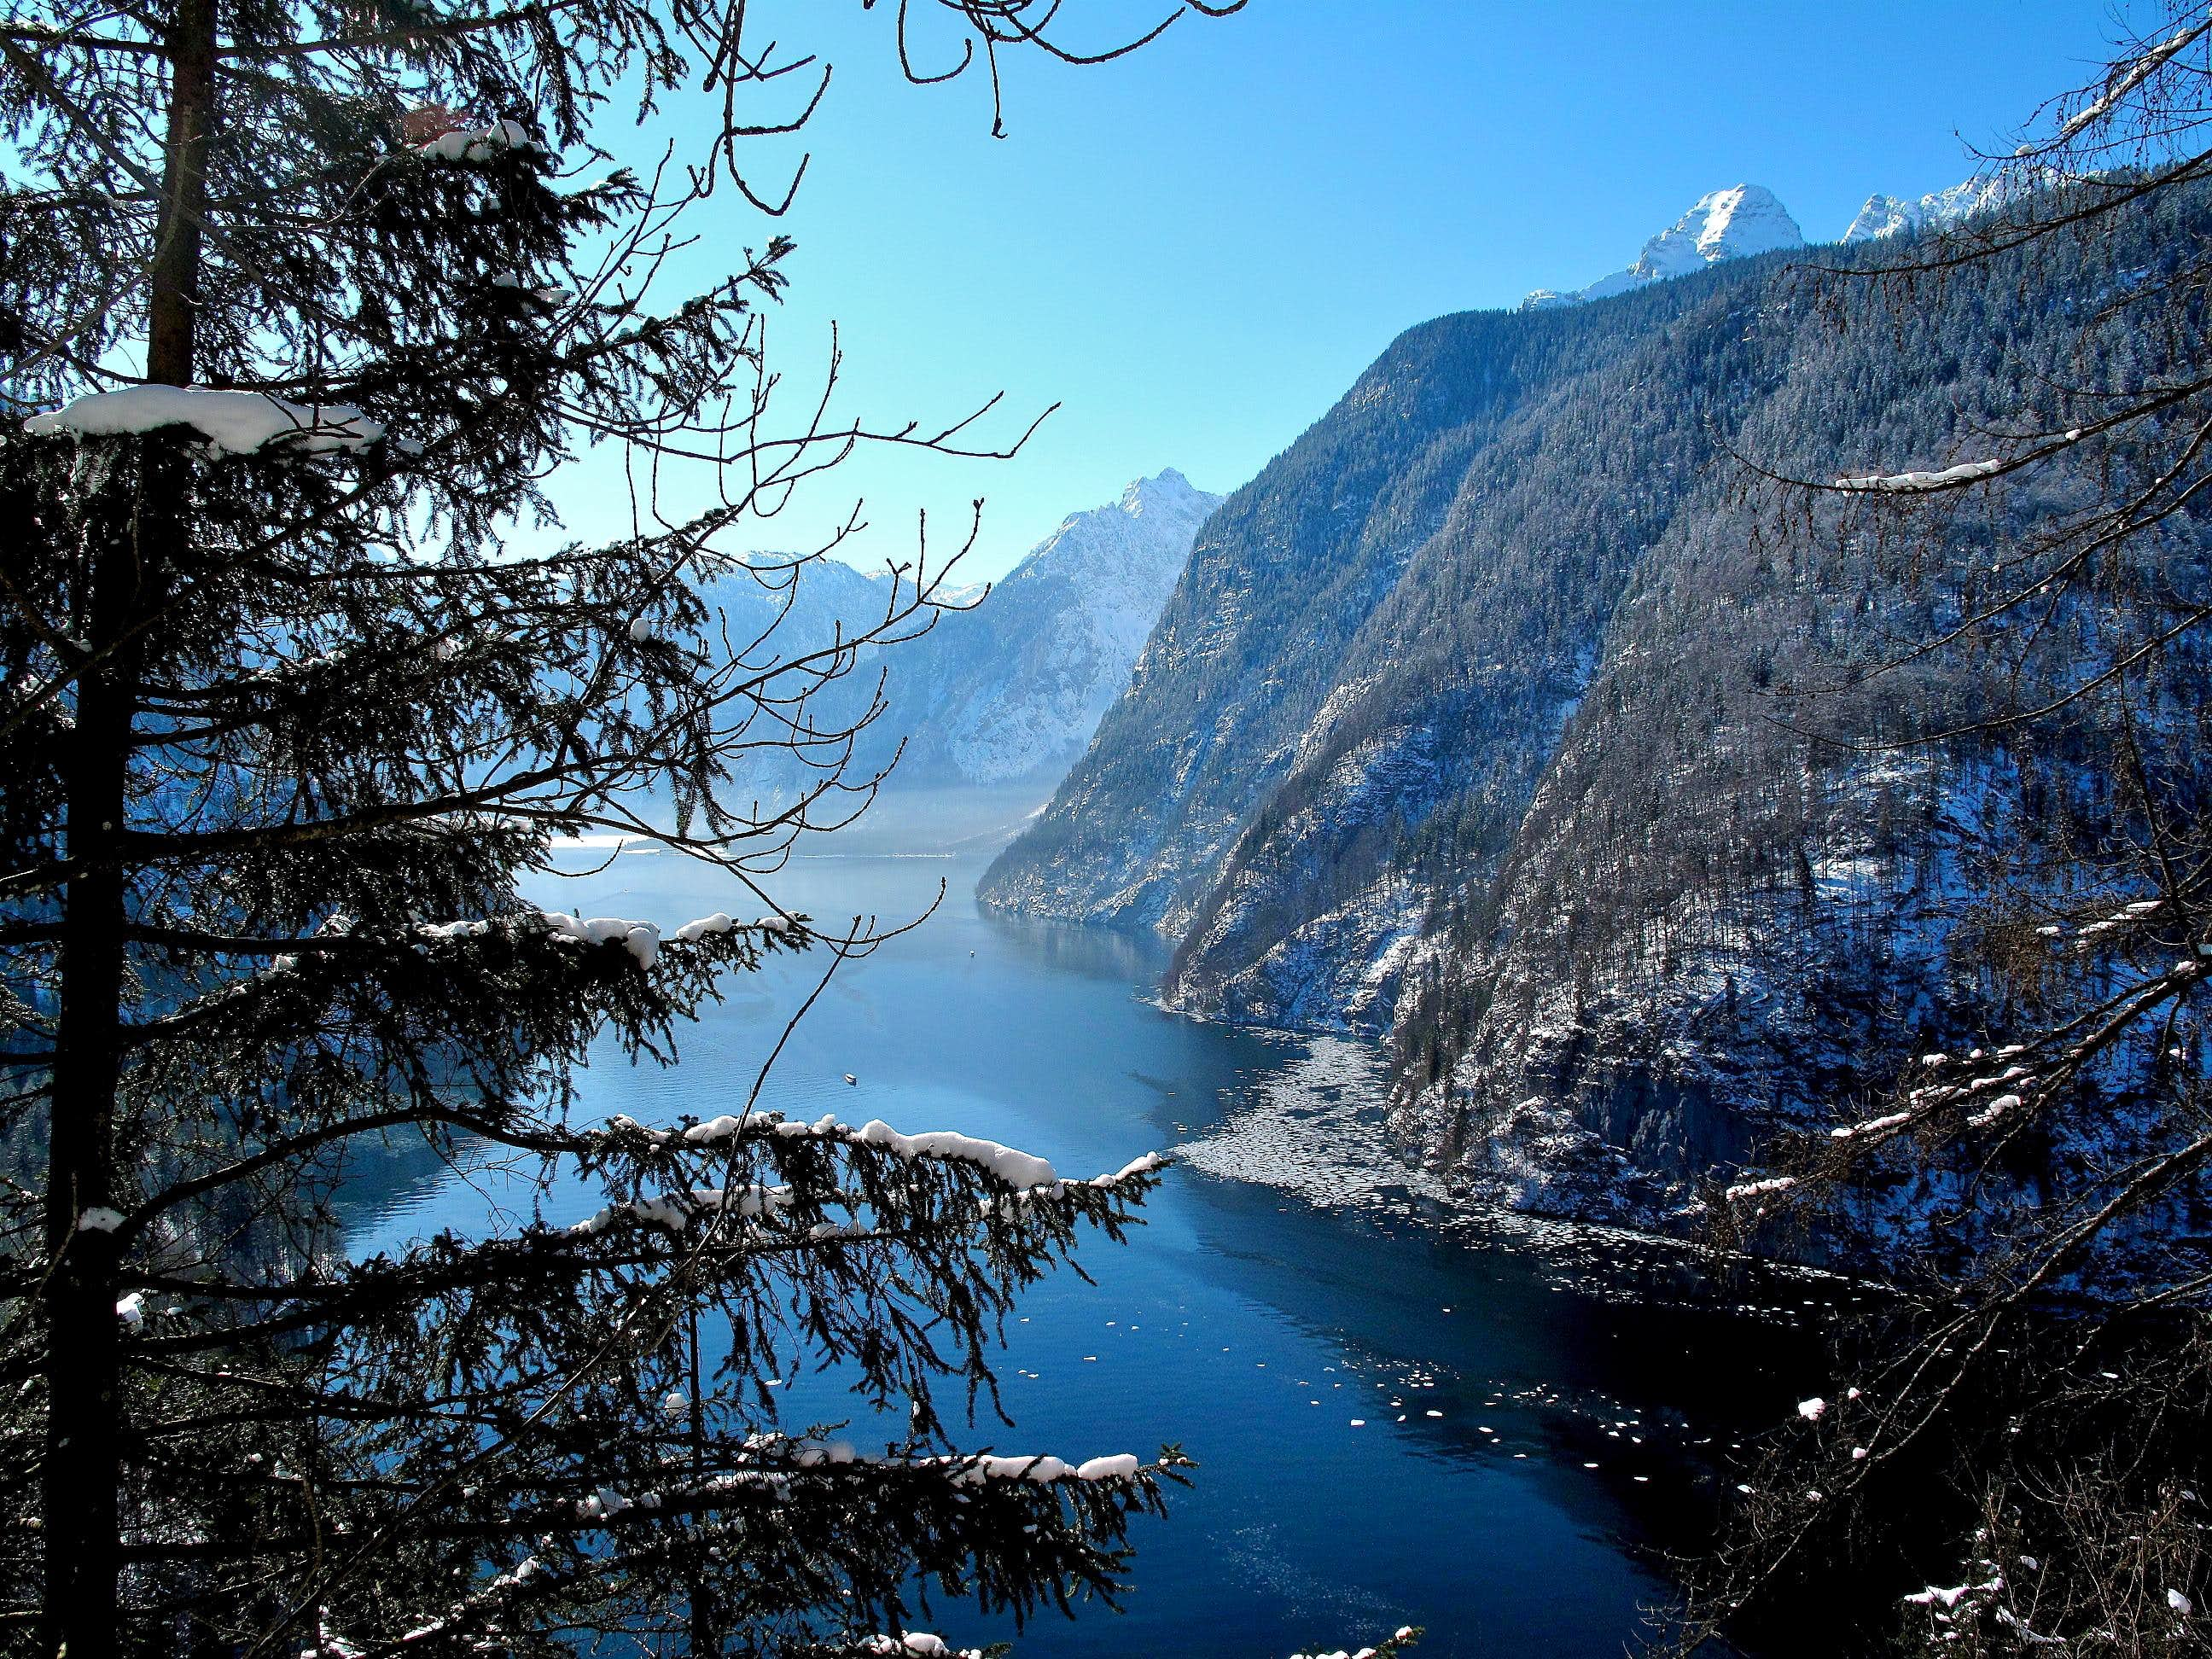 Images of the Koenigssee